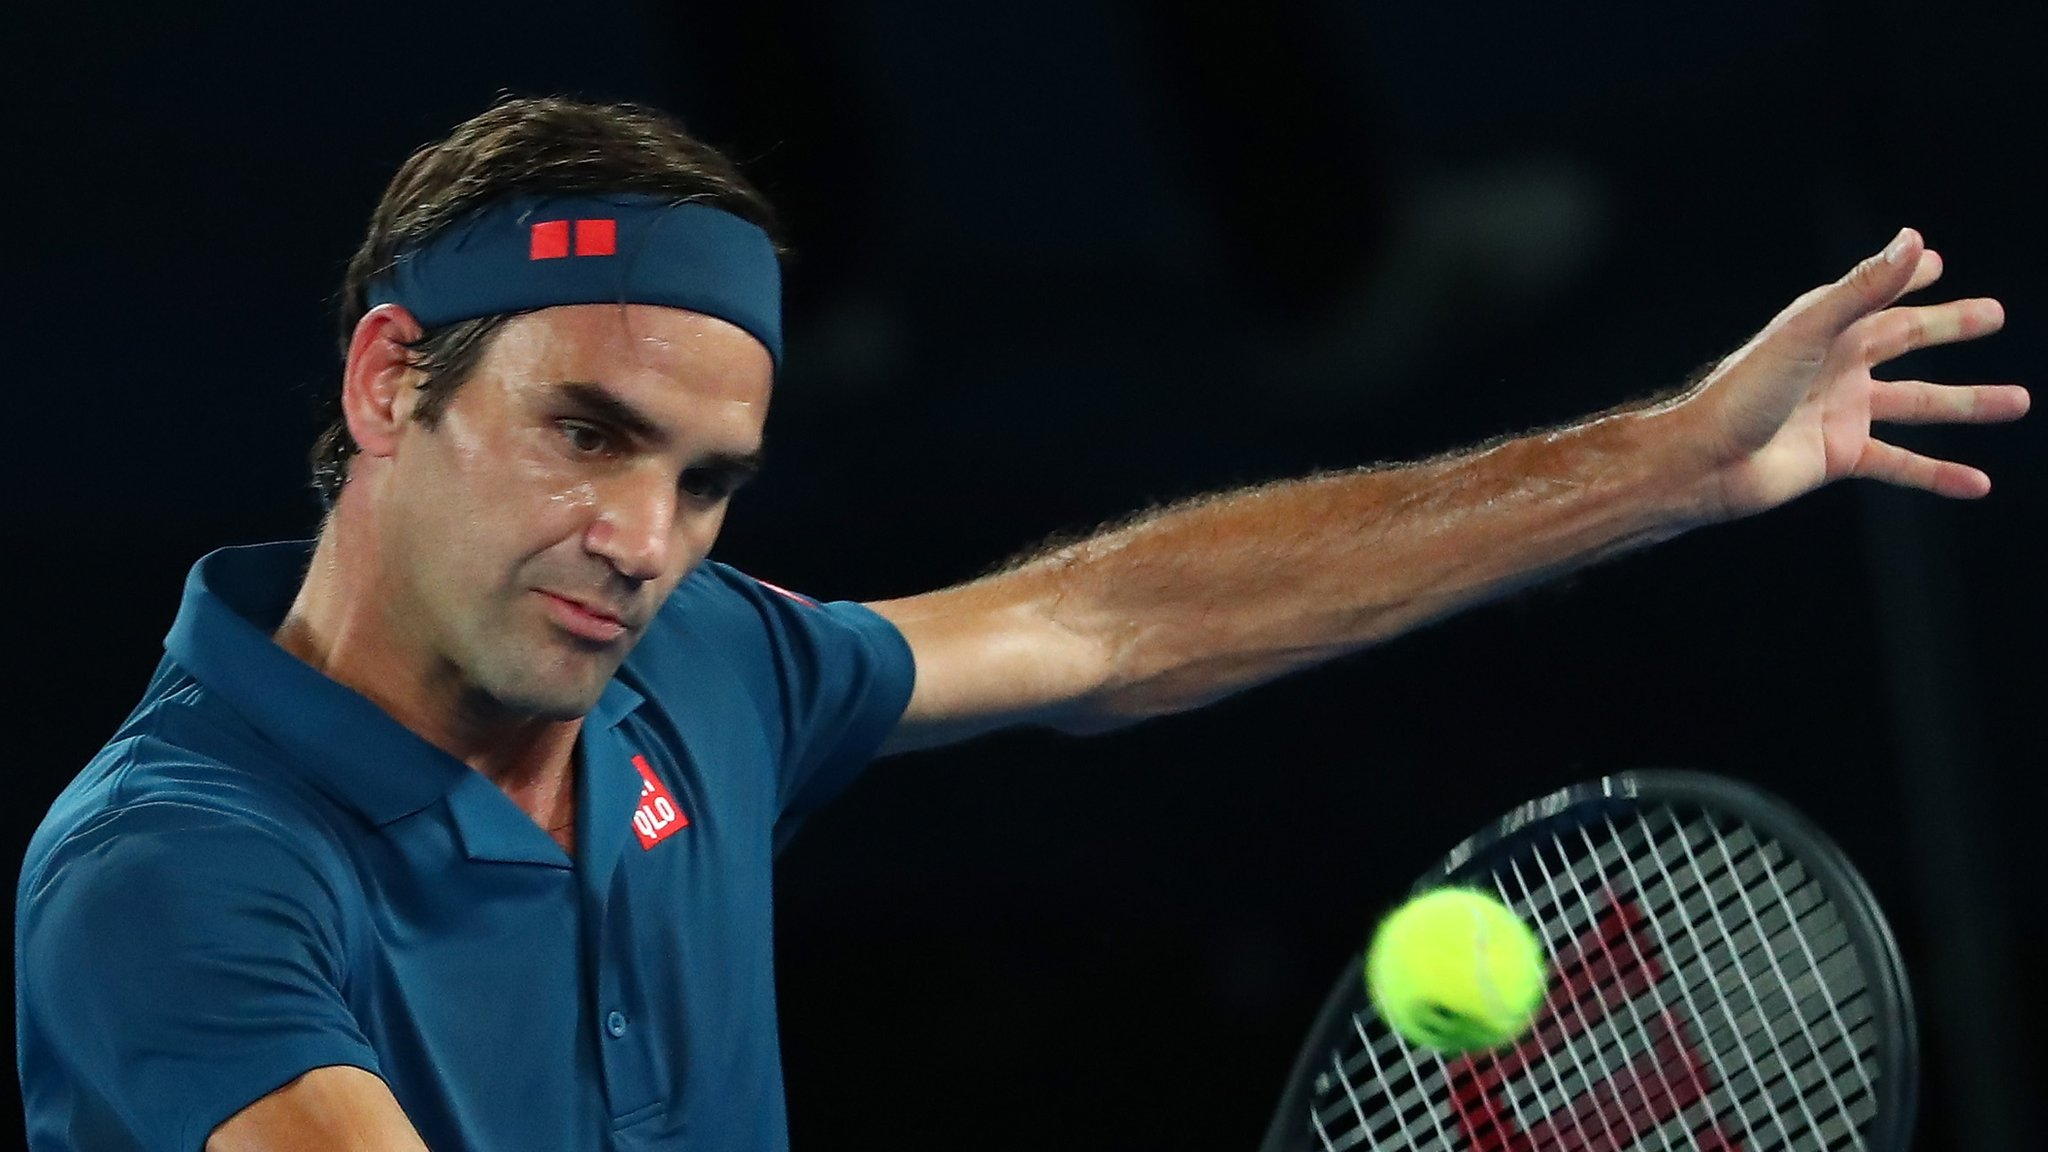 Federer and Nadal win but ninth seed Isner loses